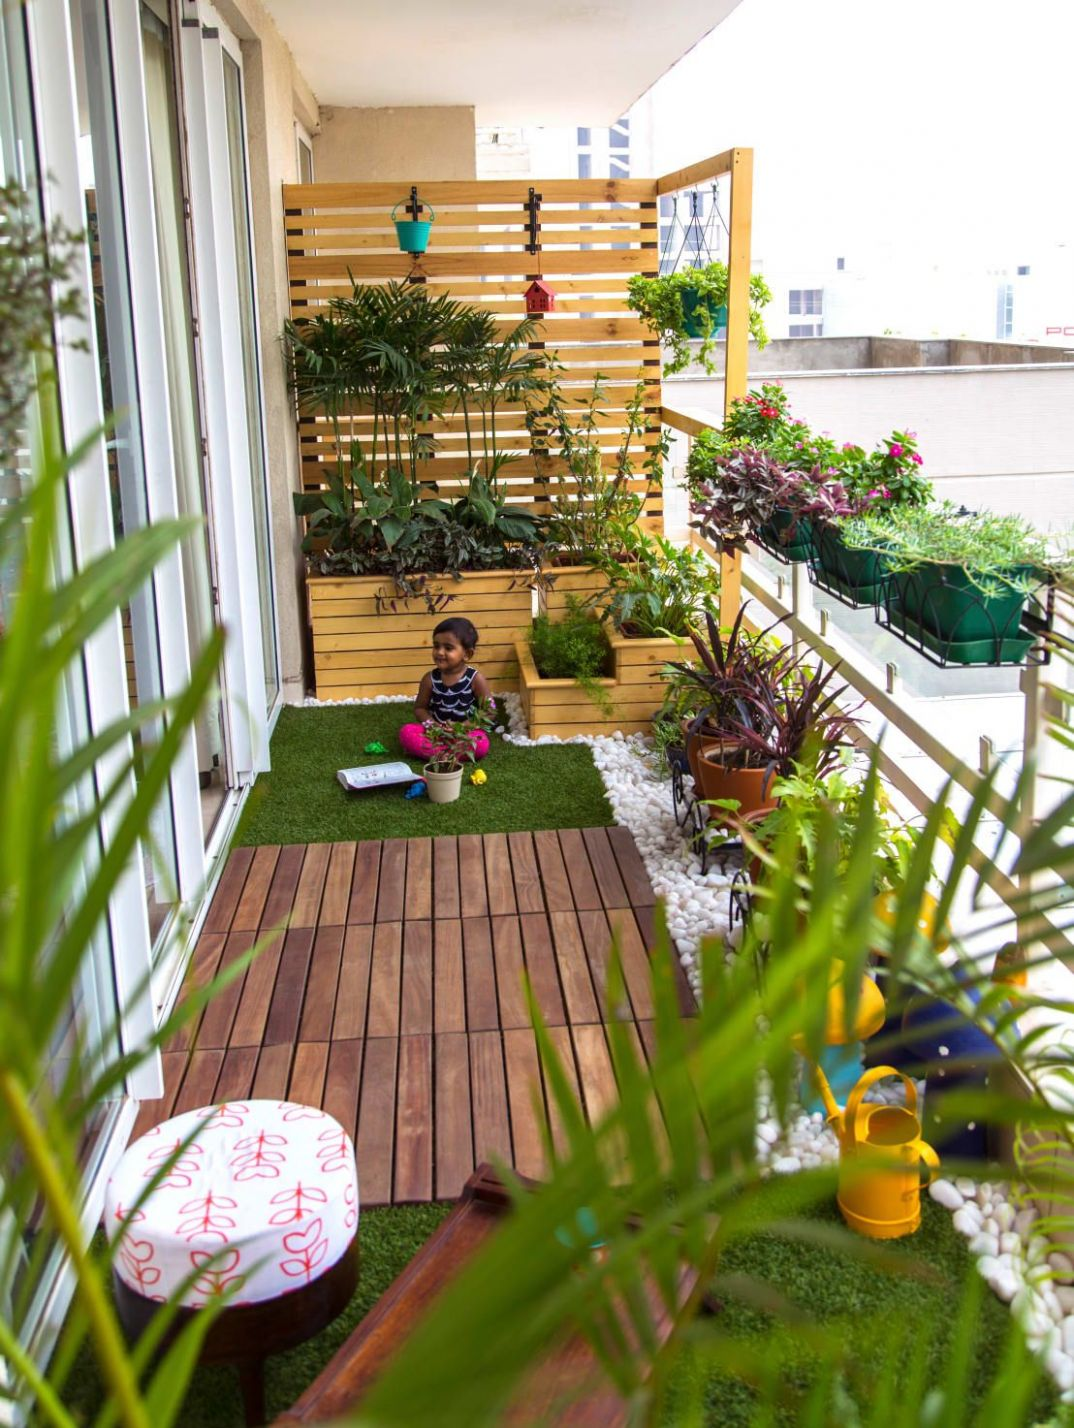 11 Smart Balcony Garden Ideas That are Awesome | Small balcony ..